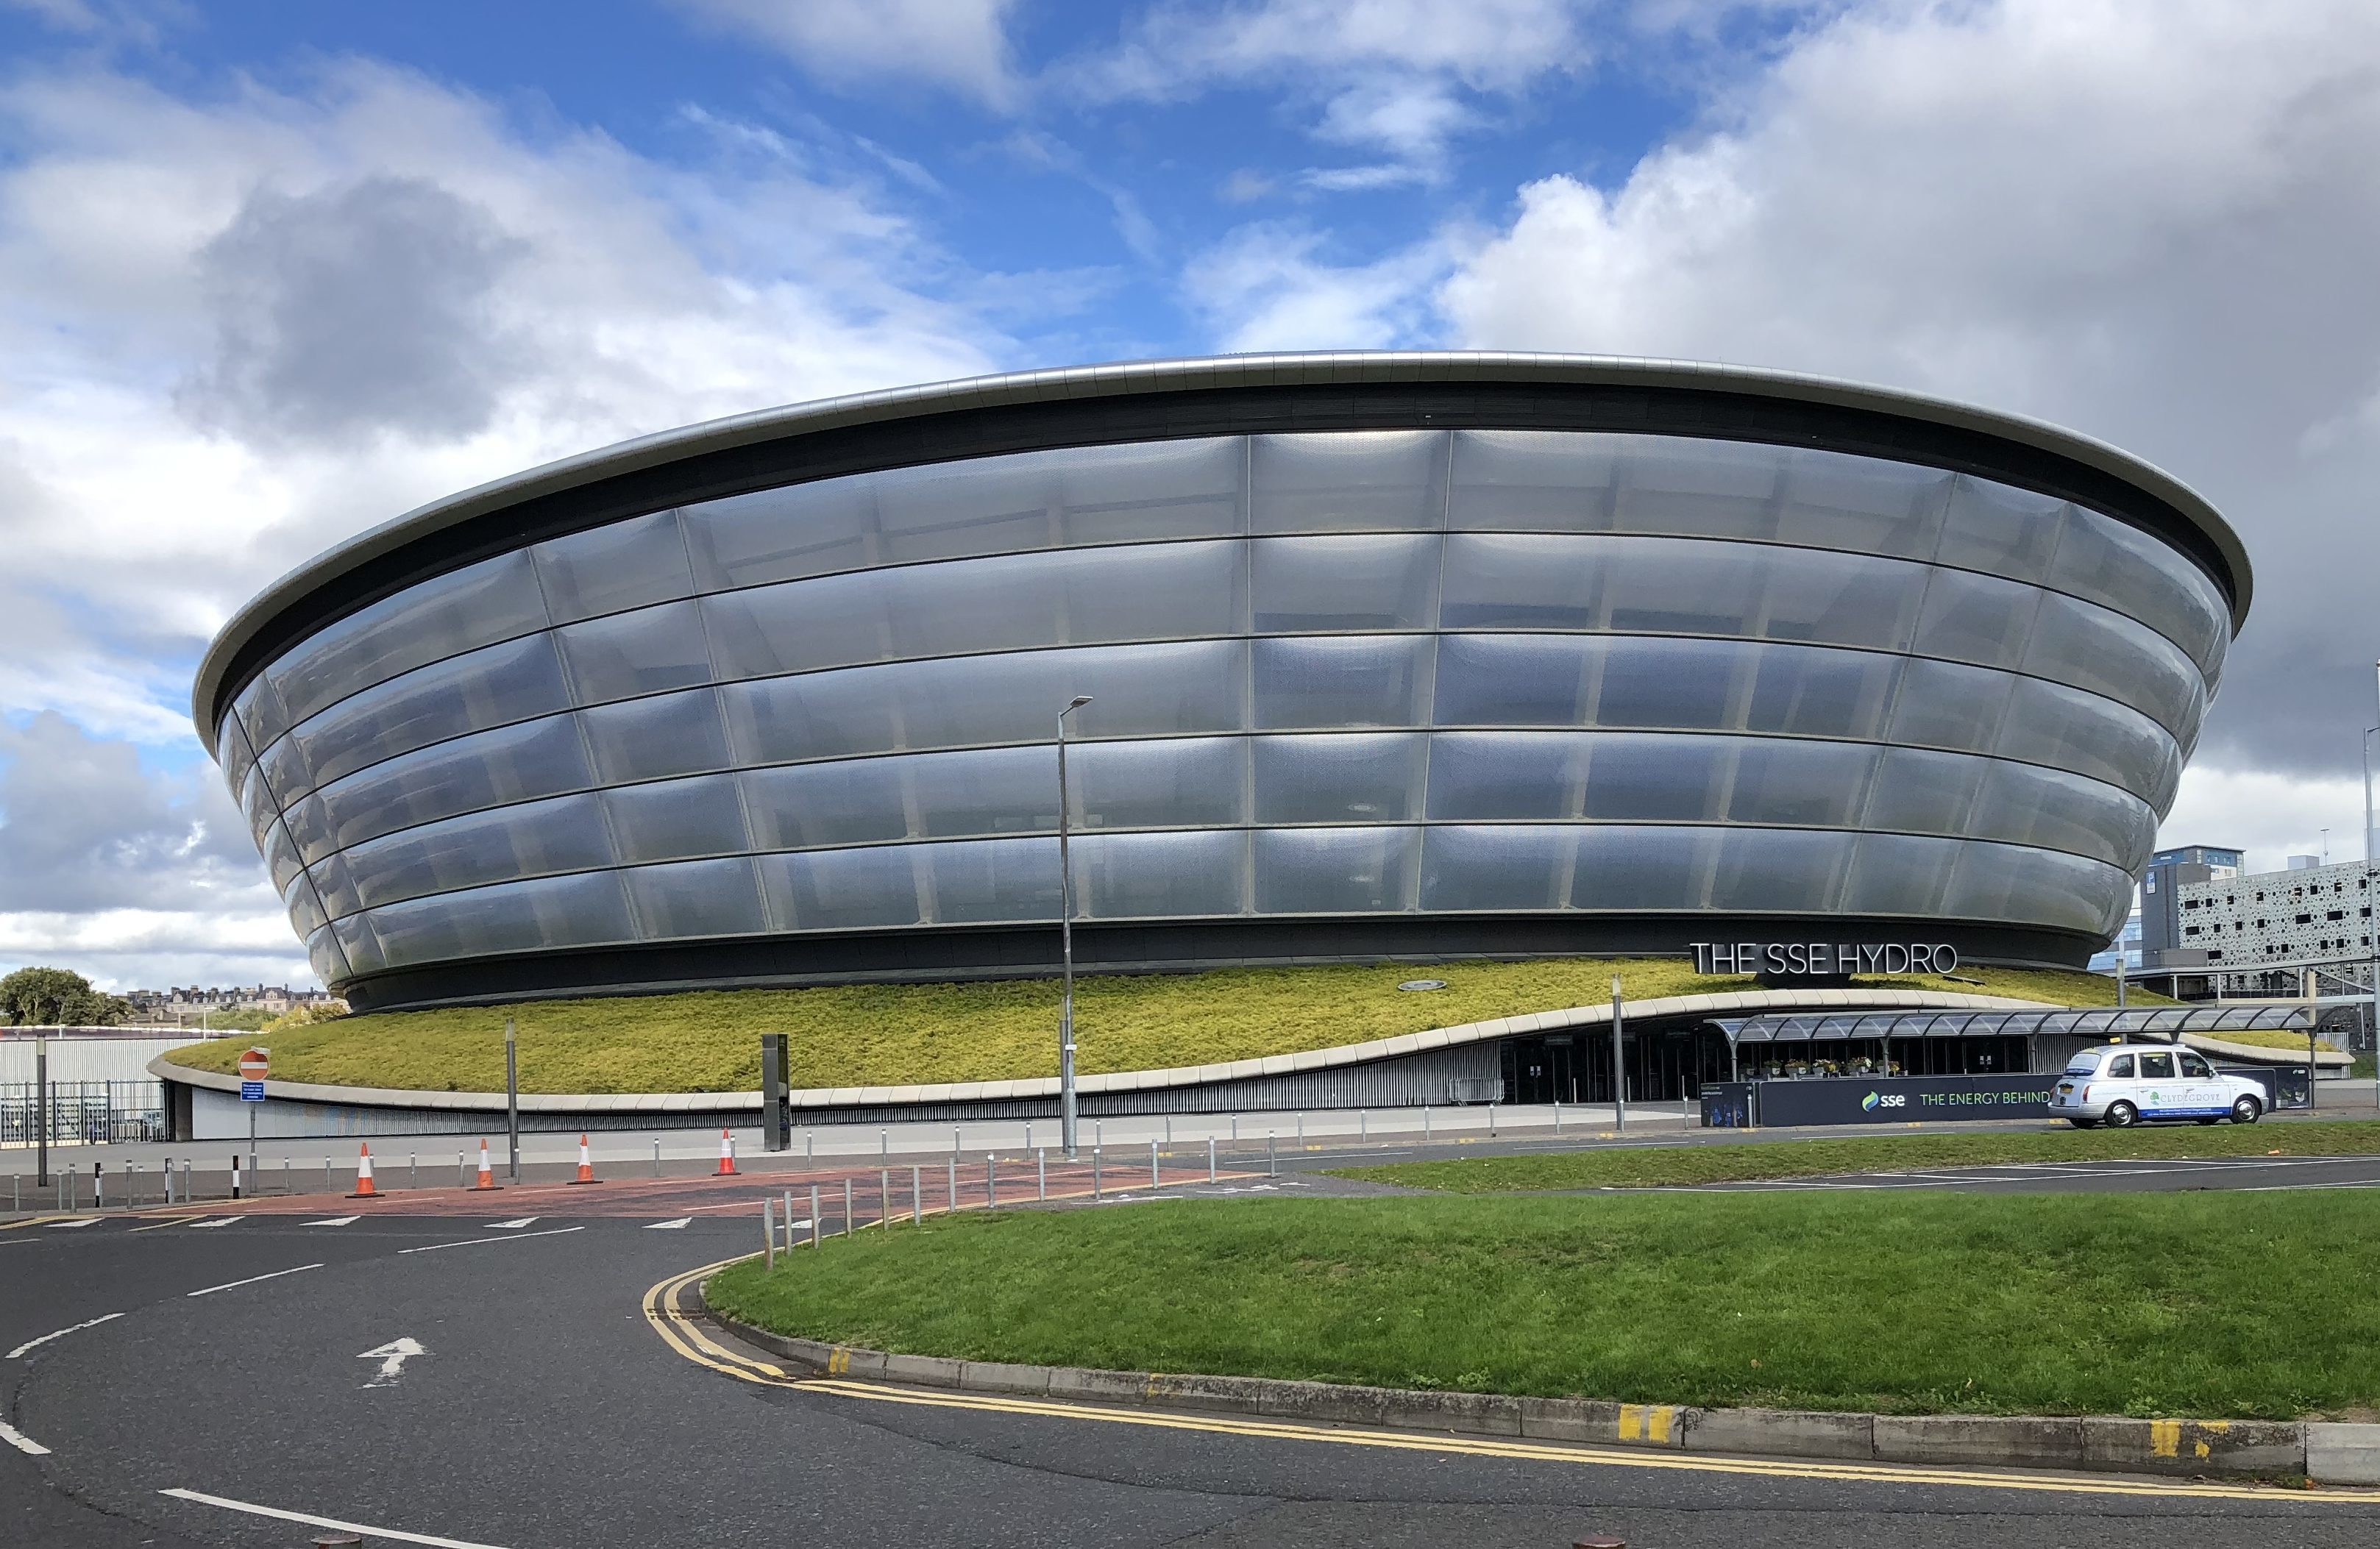 Glasgow's SSE Hydro arena (Ross Crae / DC Thomson)